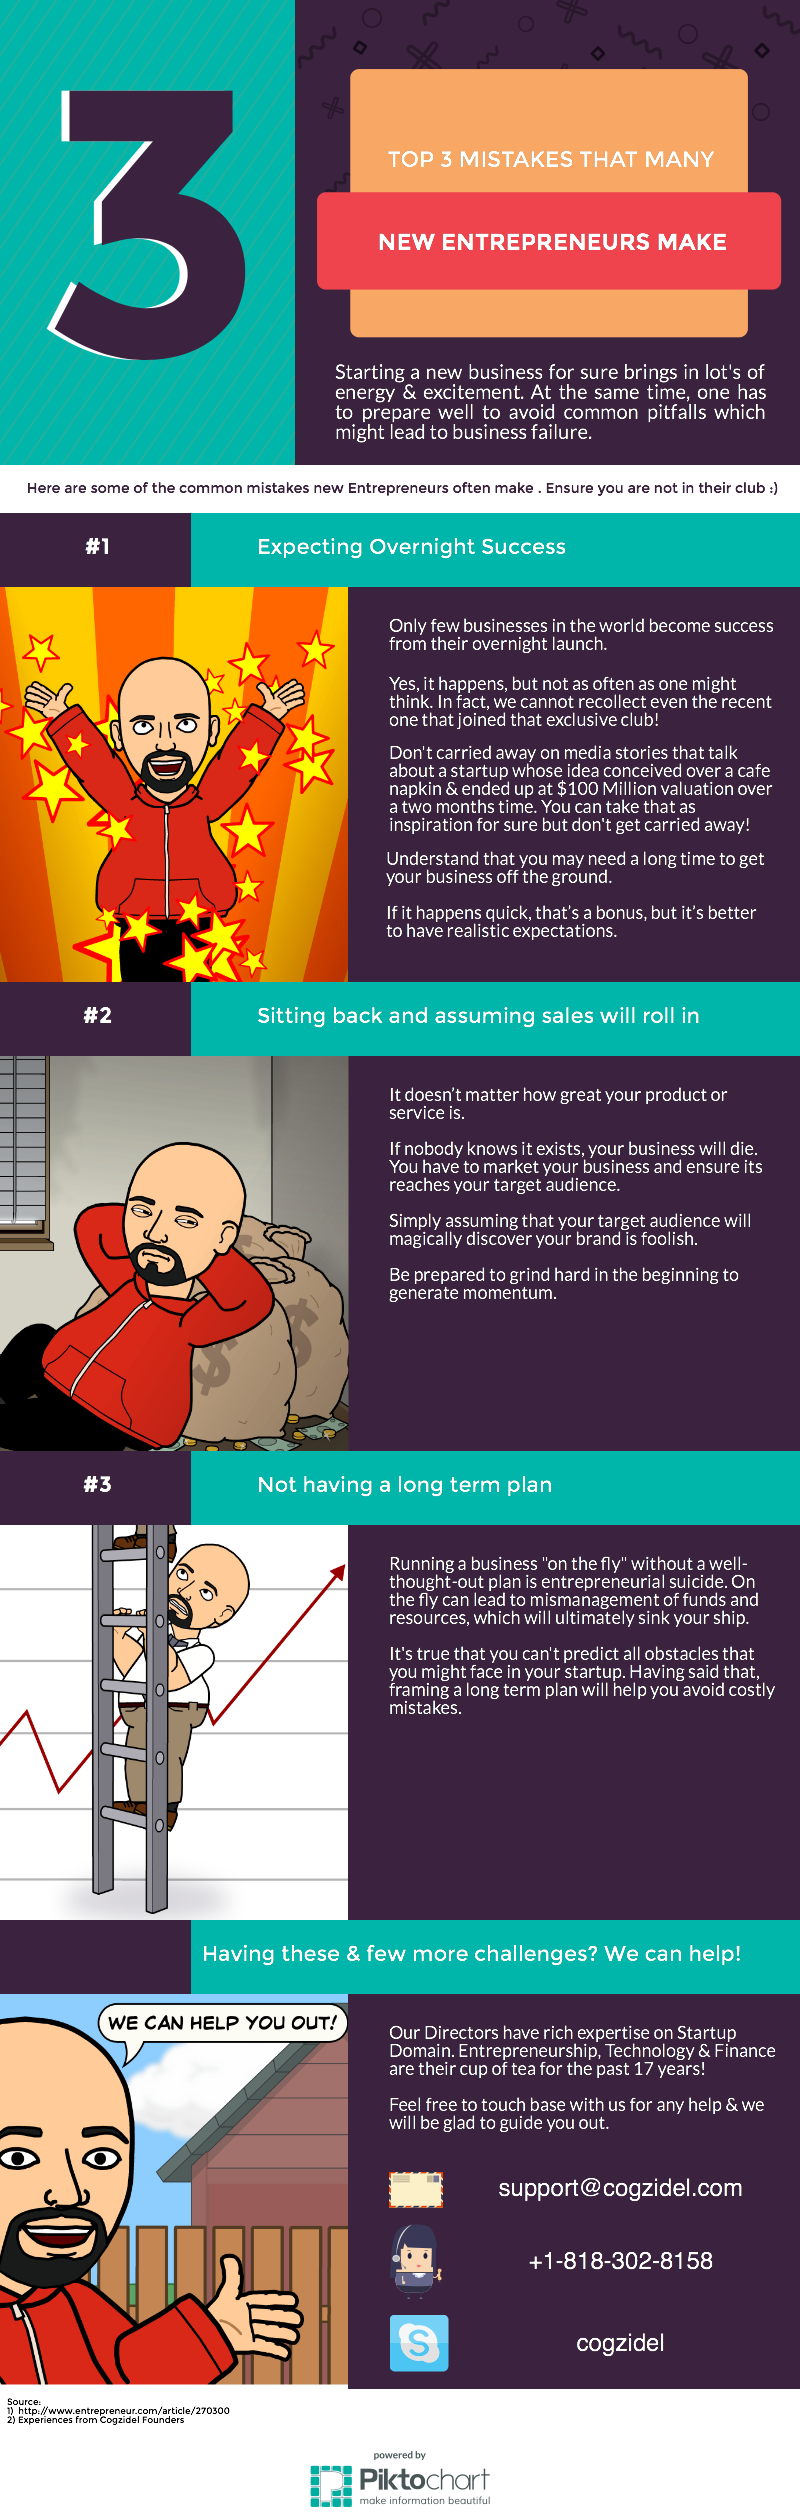 Top-3-Mistakes-That-Many-New-Entrepreneurs-Make--Infographic-From-Cogzidel-Technologies